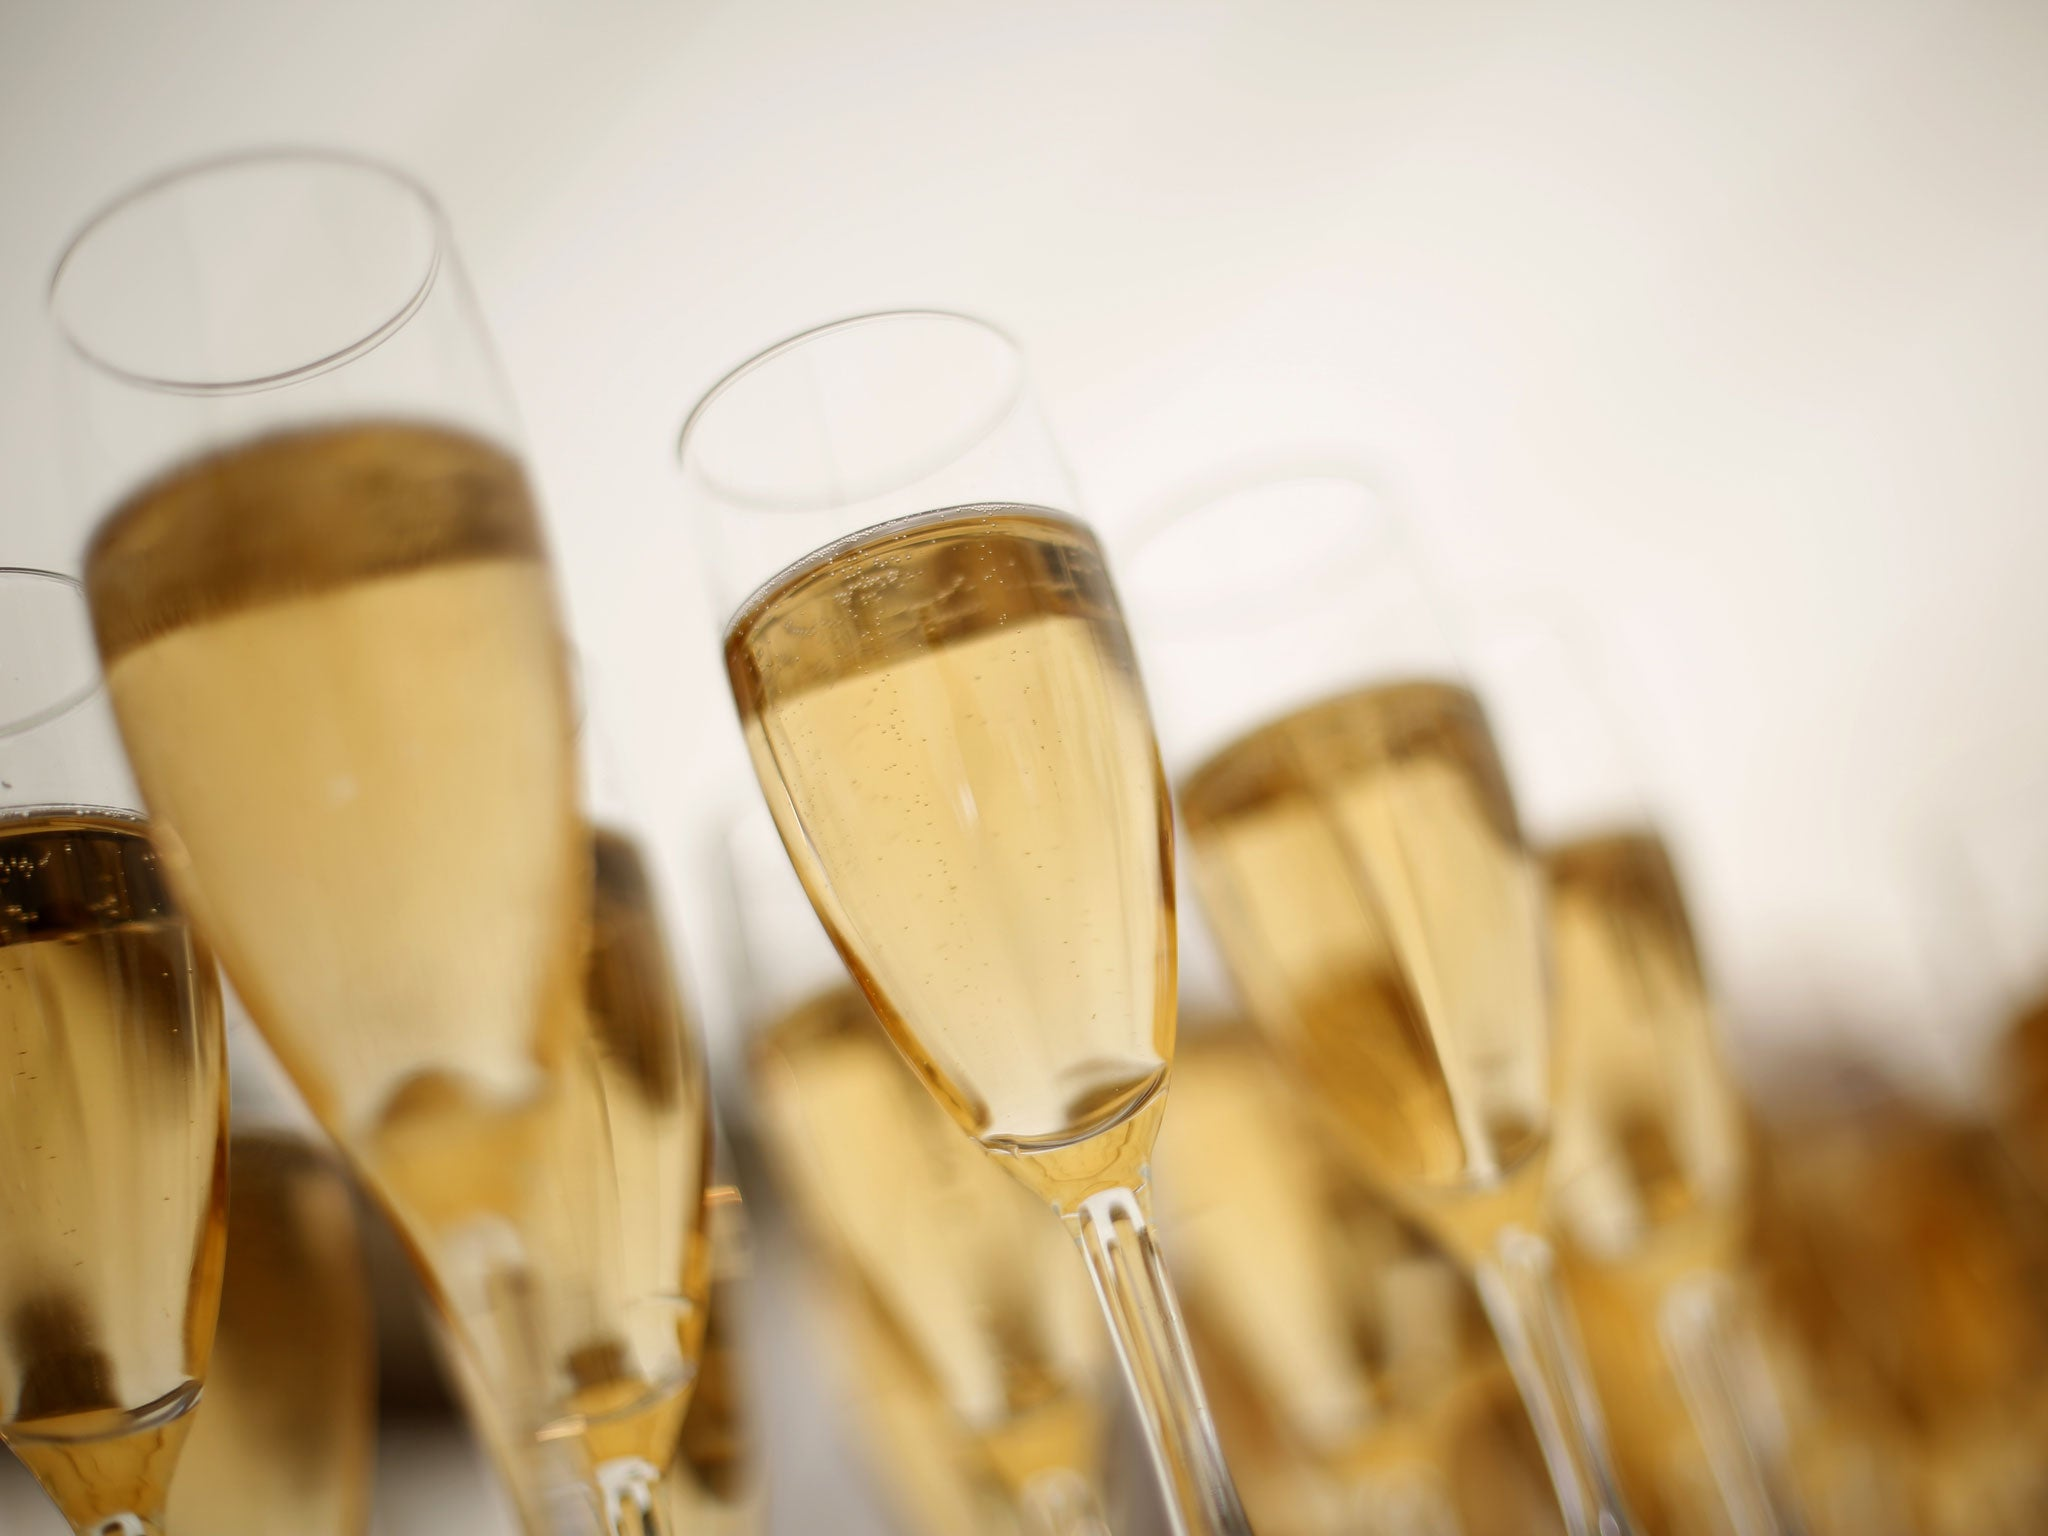 Prosecco on tap? Assolutamente no! Italian producers in dismay over British pubs serving their fizz like warm beer